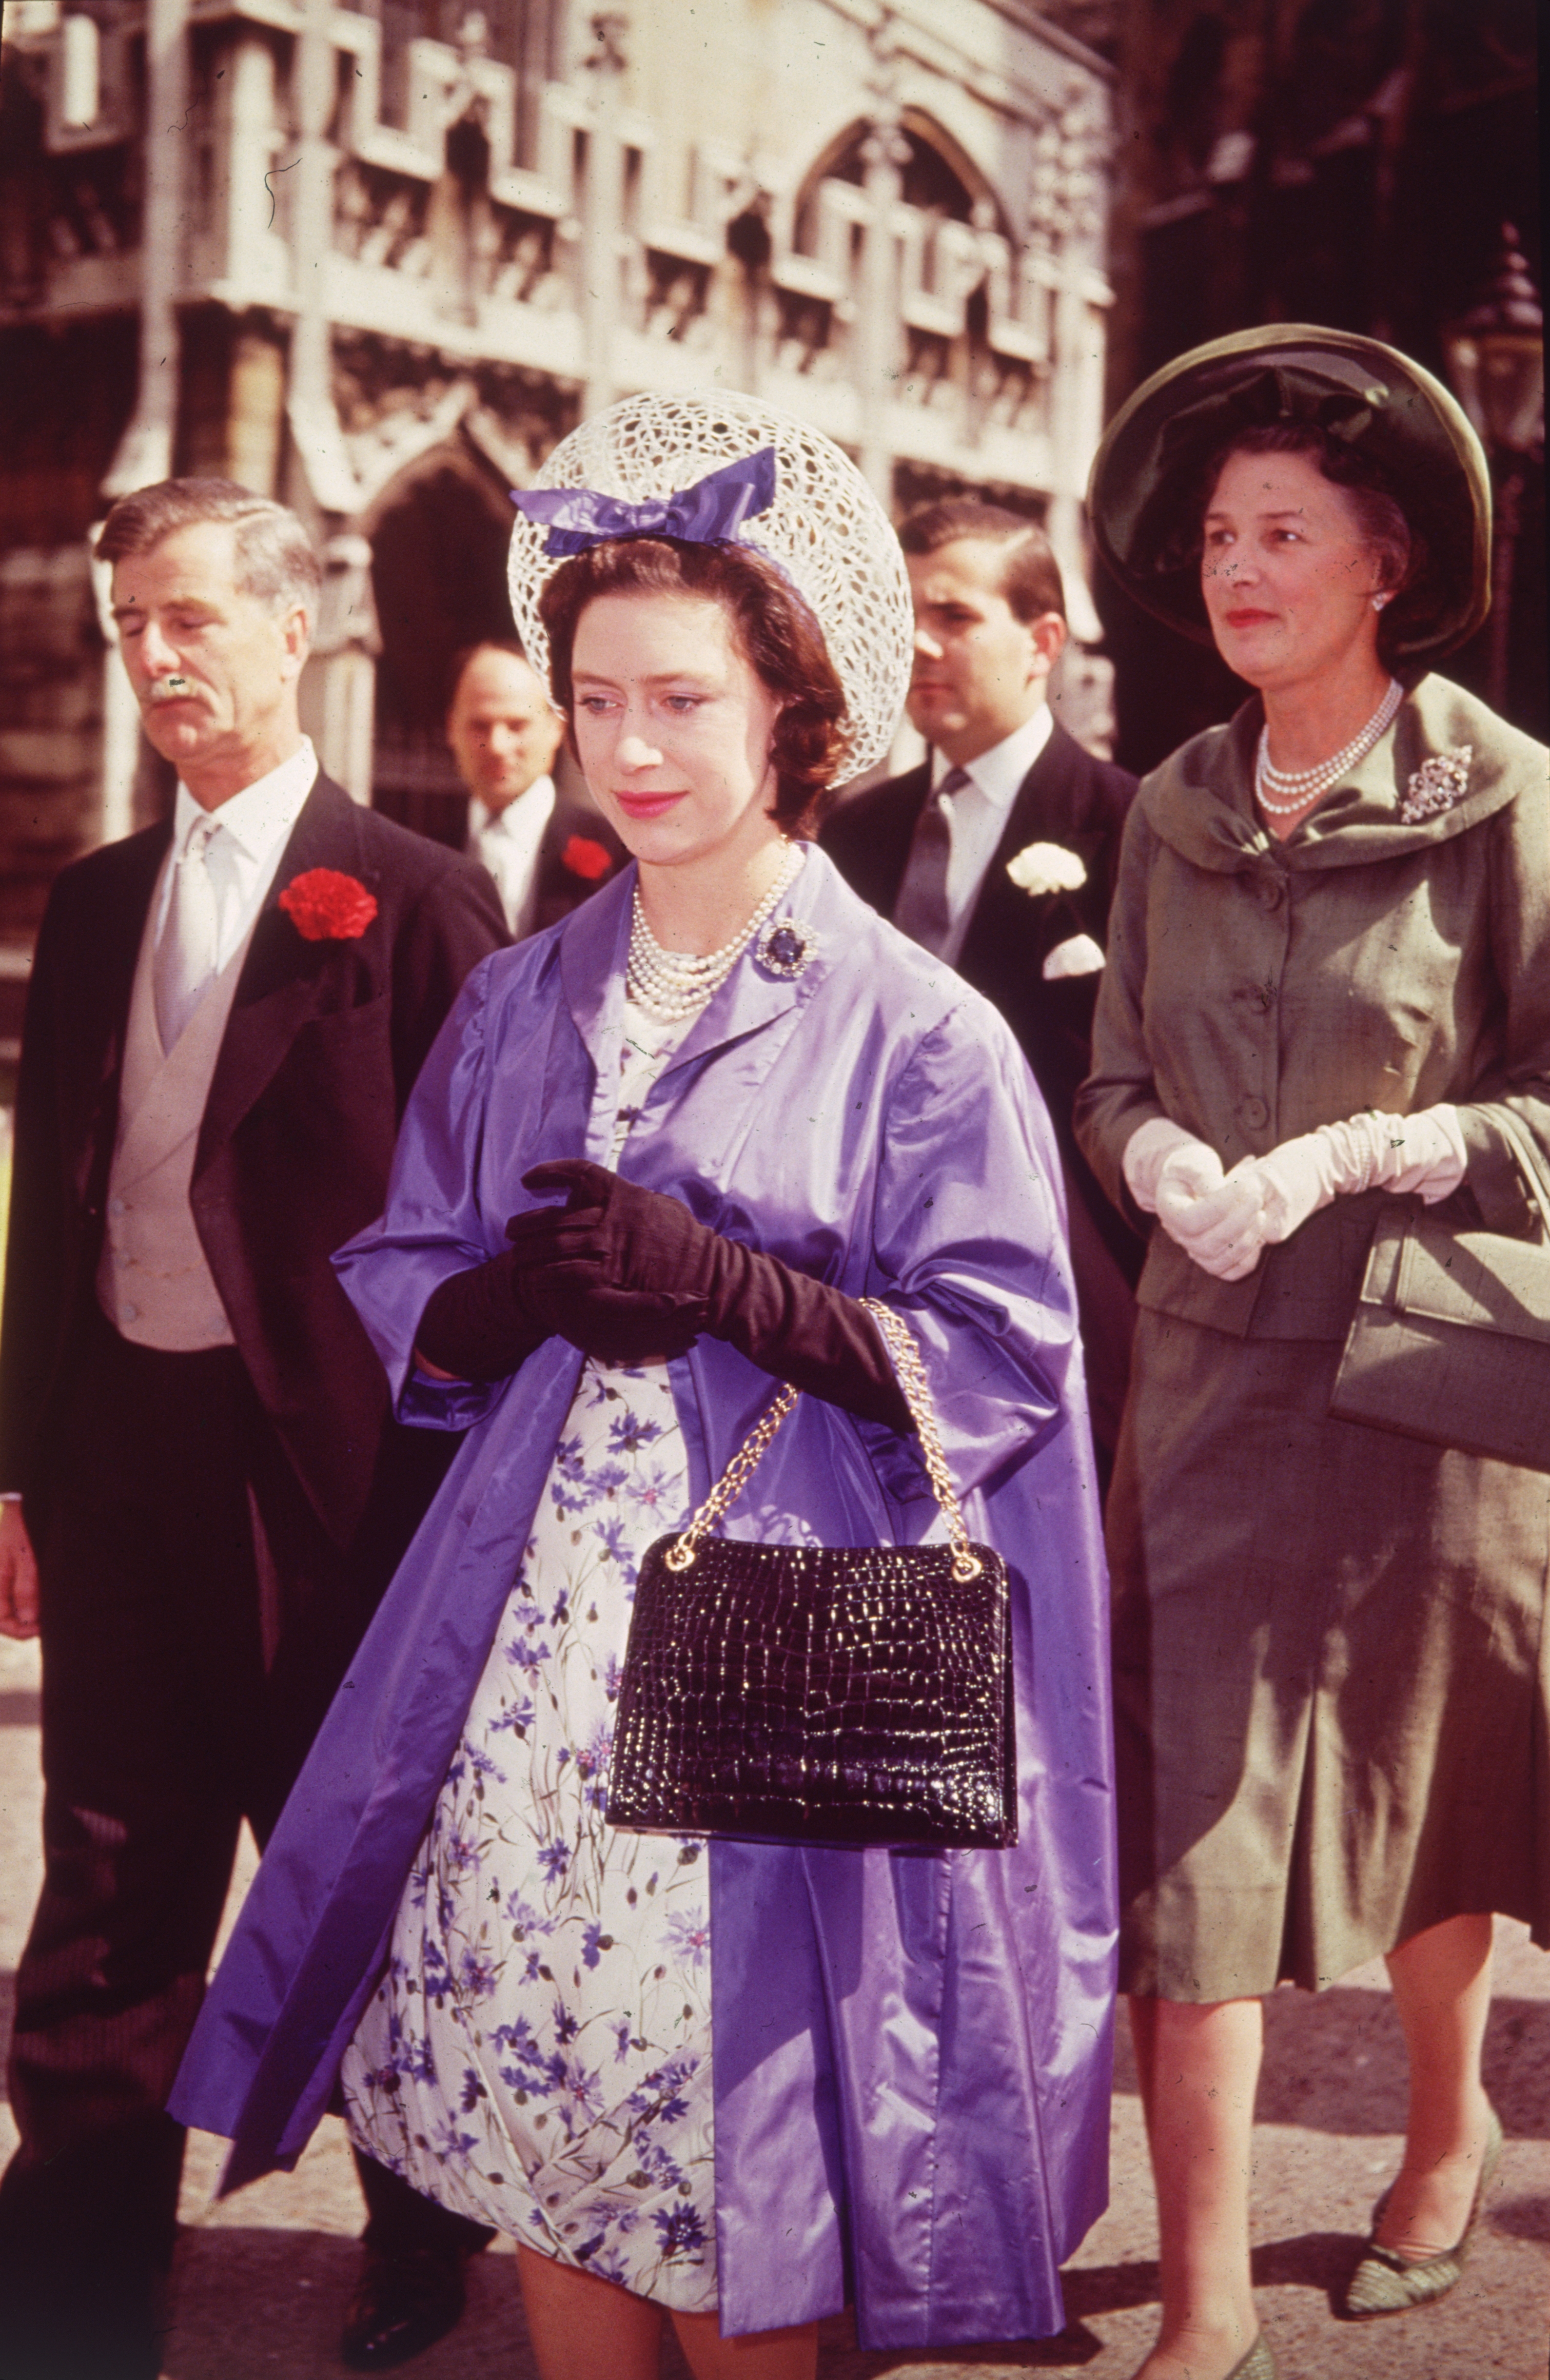 Princess Margaret (1962) attends a wedding at Westminster Abbey, London